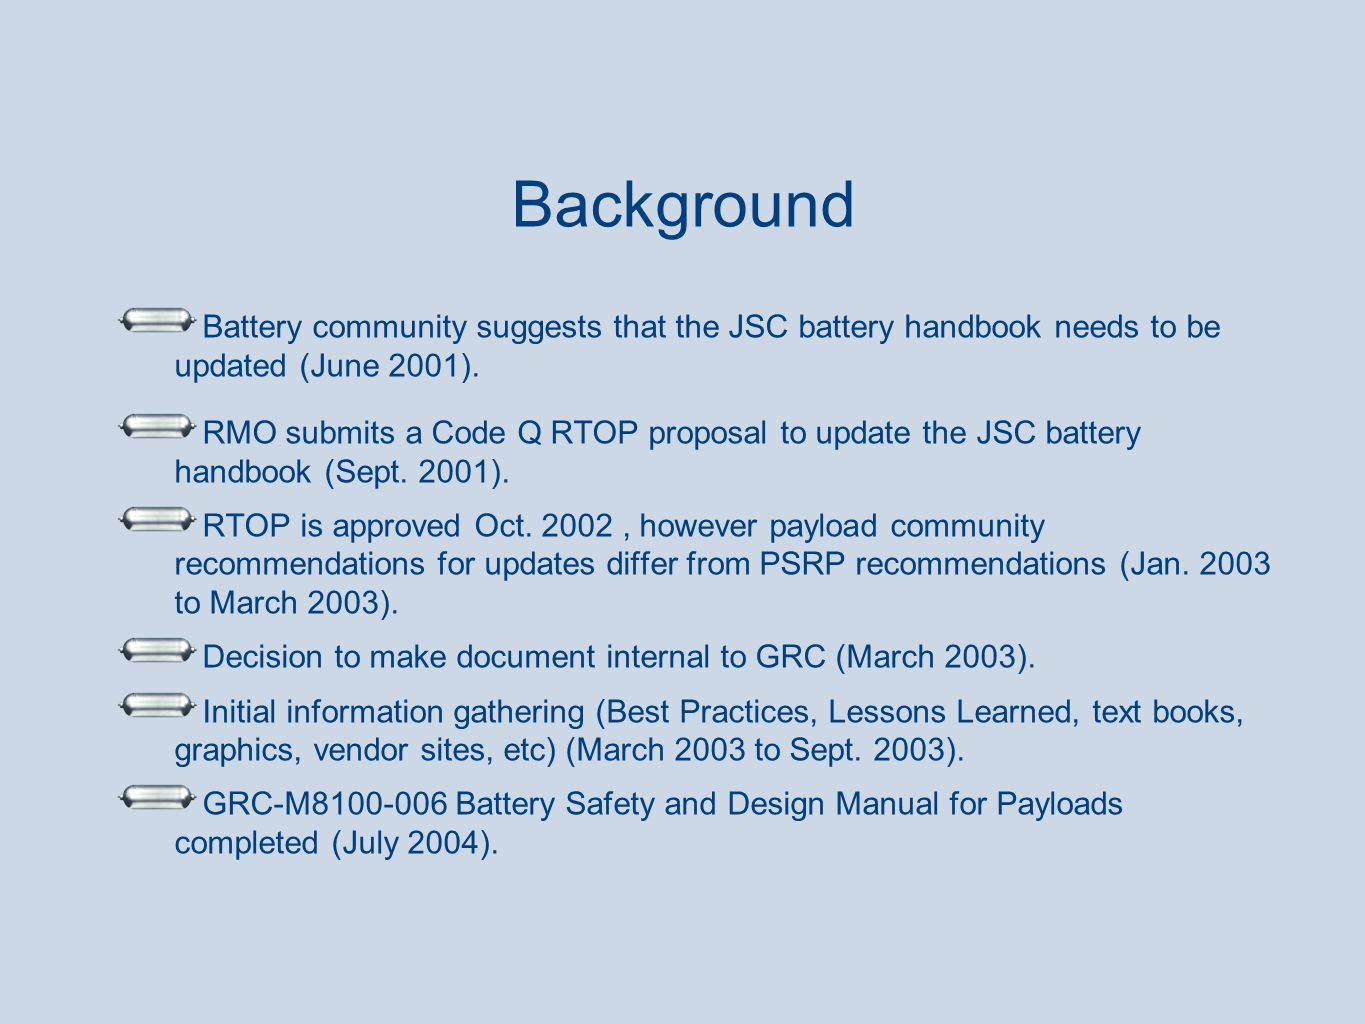 Battery community suggests that the JSC battery handbook needs to be updated (June 2001). RMO submits a Code Q RTOP proposal to update the JSC battery